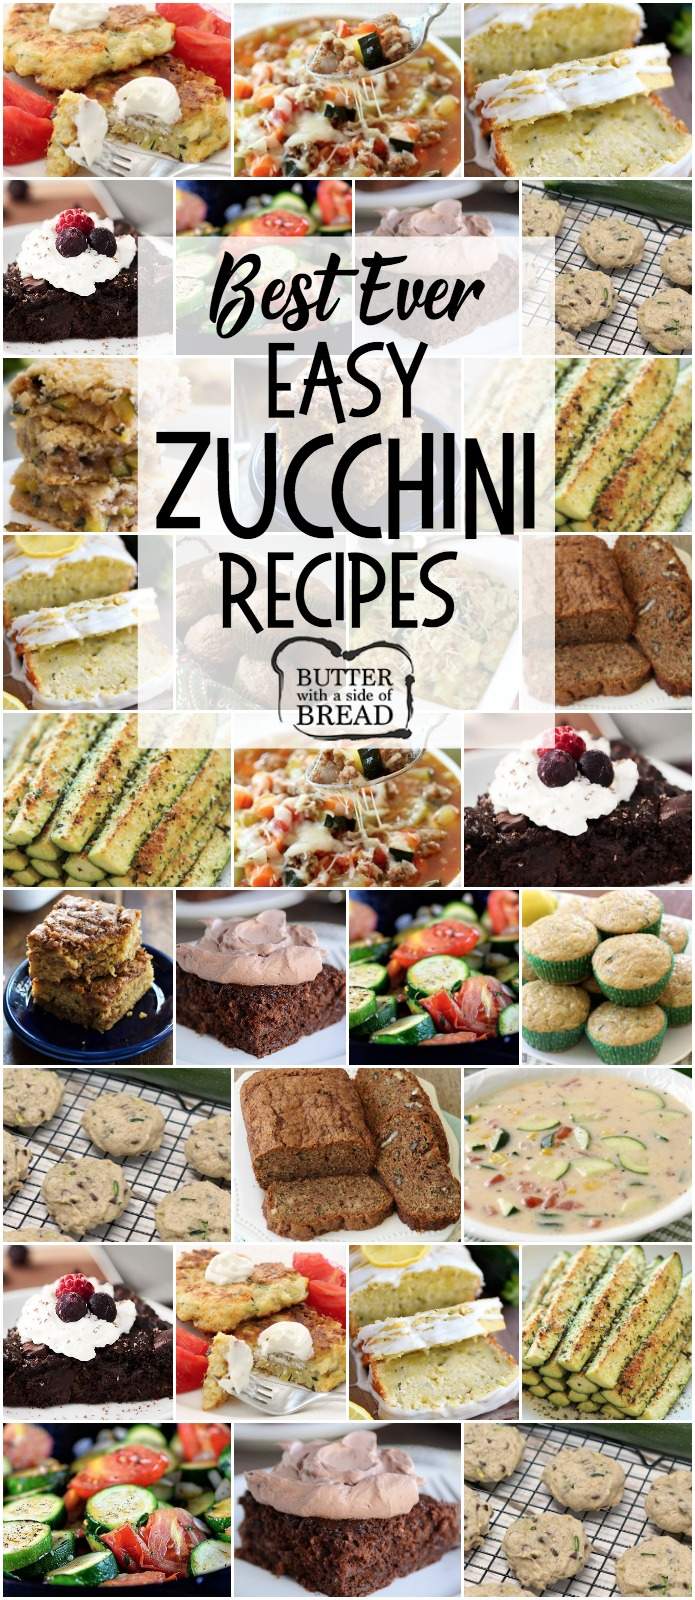 Easy Zucchini Recipes that everyone goes crazy over! Best Zucchini Bread, Zucchini Cookies, grilled zucchini and more. The BEST zucchini recipes for when your garden is overflowing!